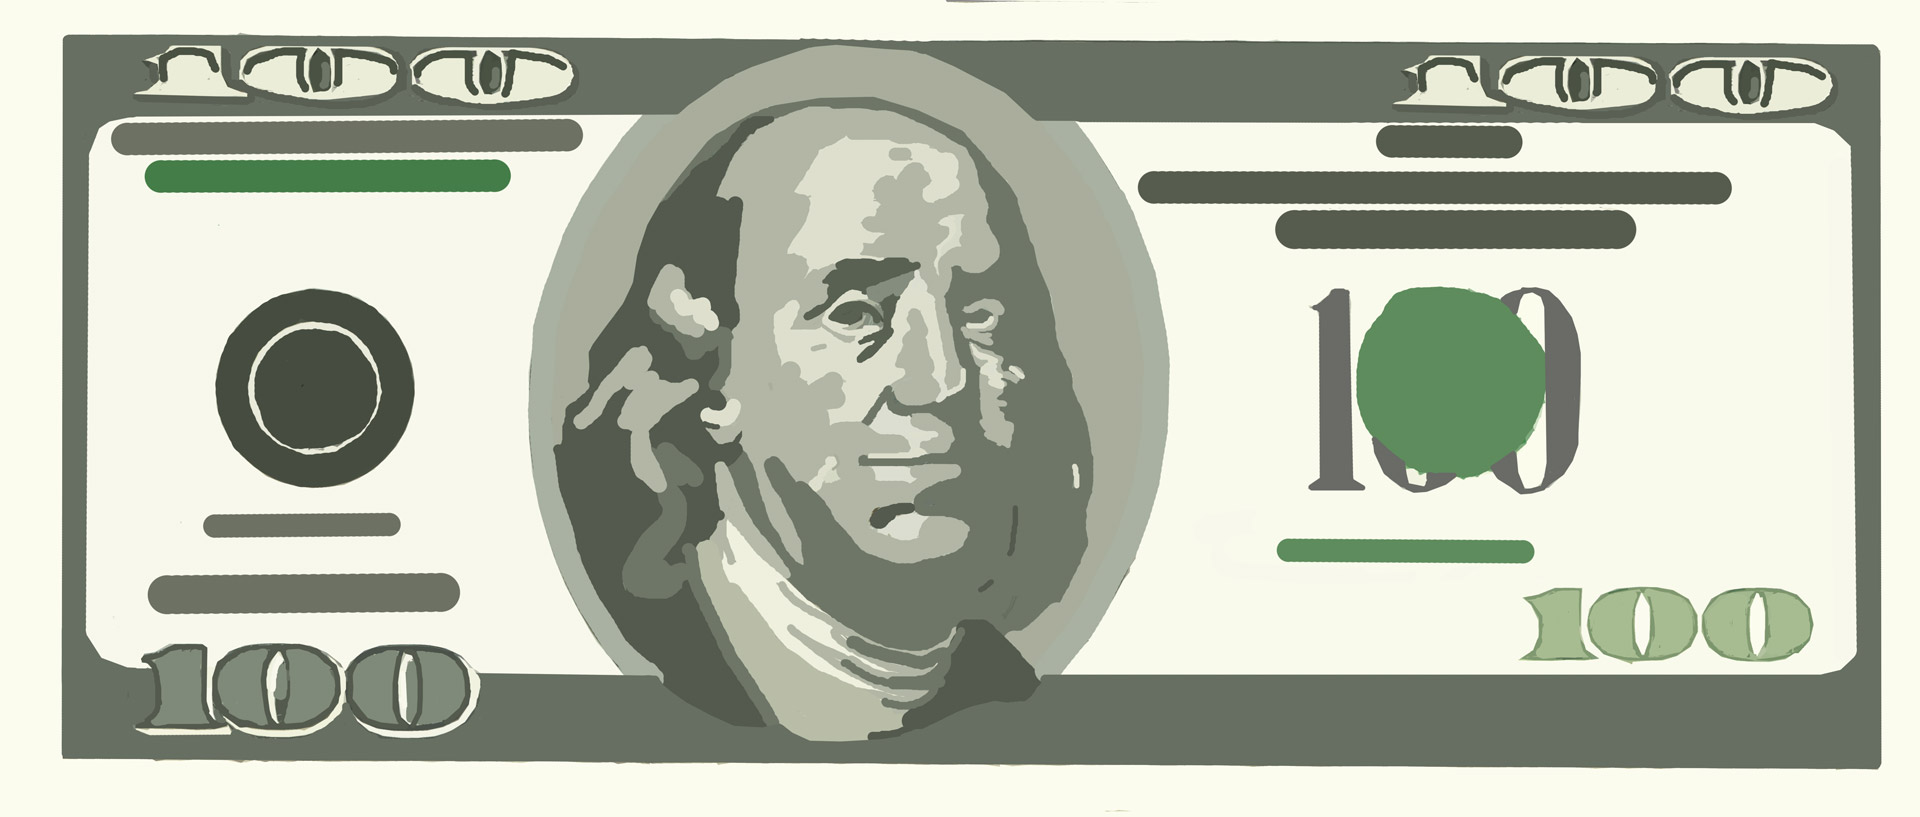 Clipart 100 dollar bill clipart black and white $100 bill clipart - ClipartFest clipart black and white